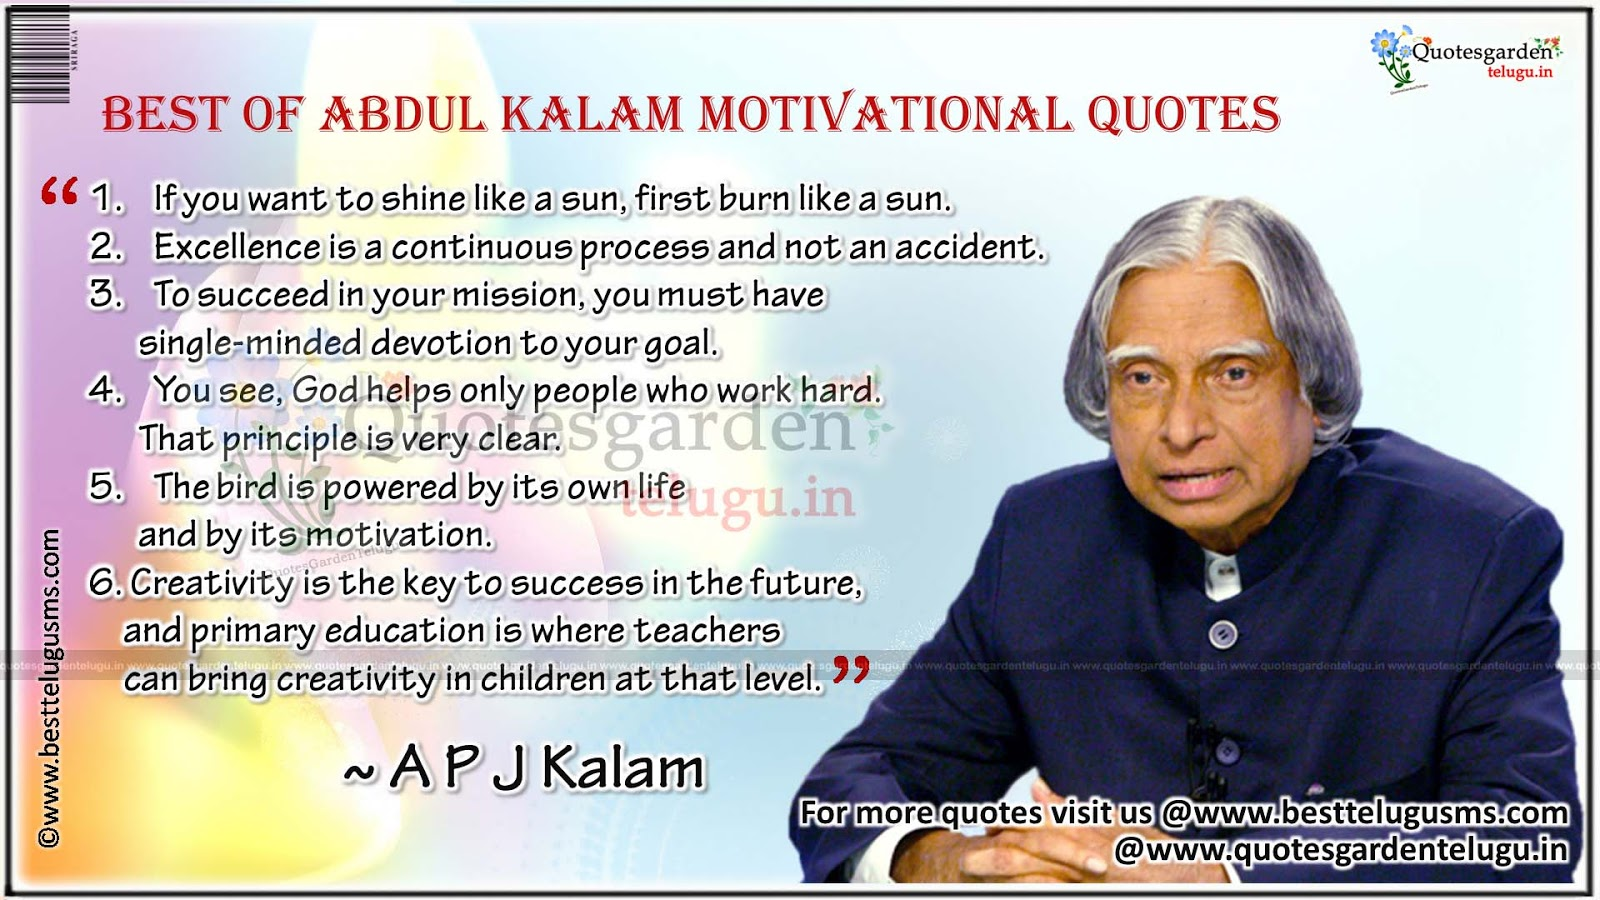 Best 10 Motivational Quotes From Abdul Kalam